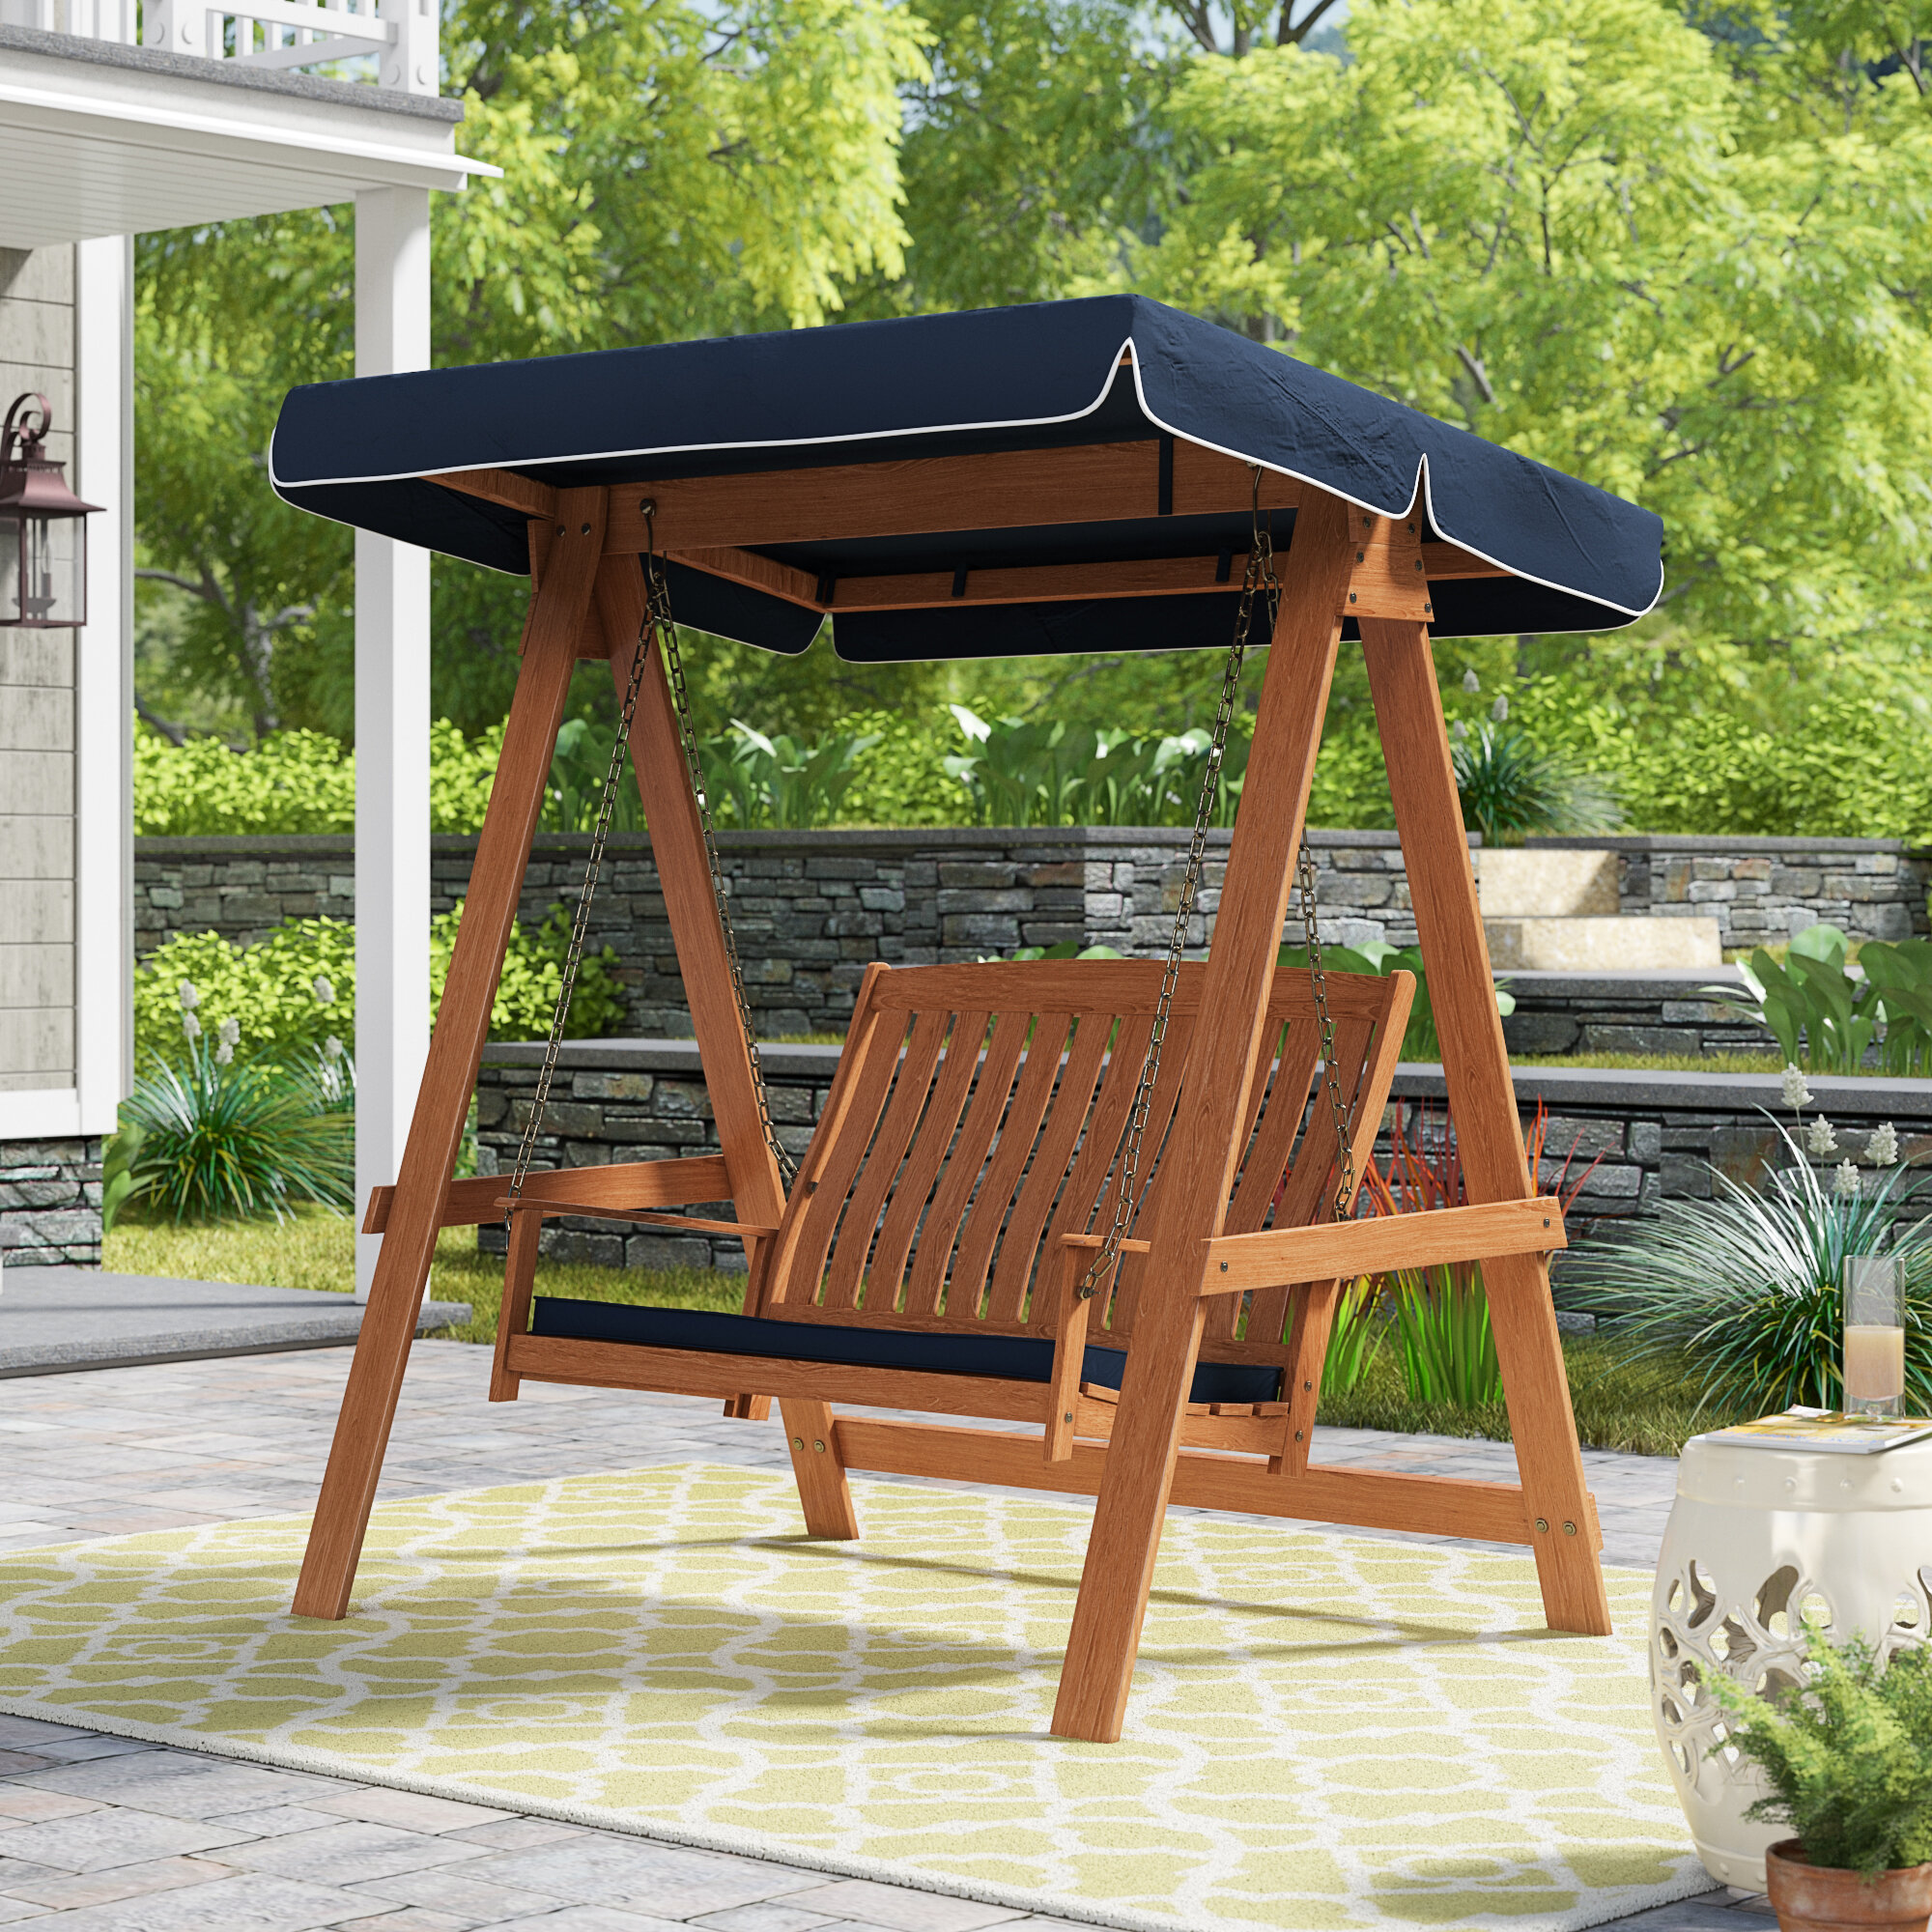 Darby Home Co Peggy Porch Swing With Stand Reviews Wayfair